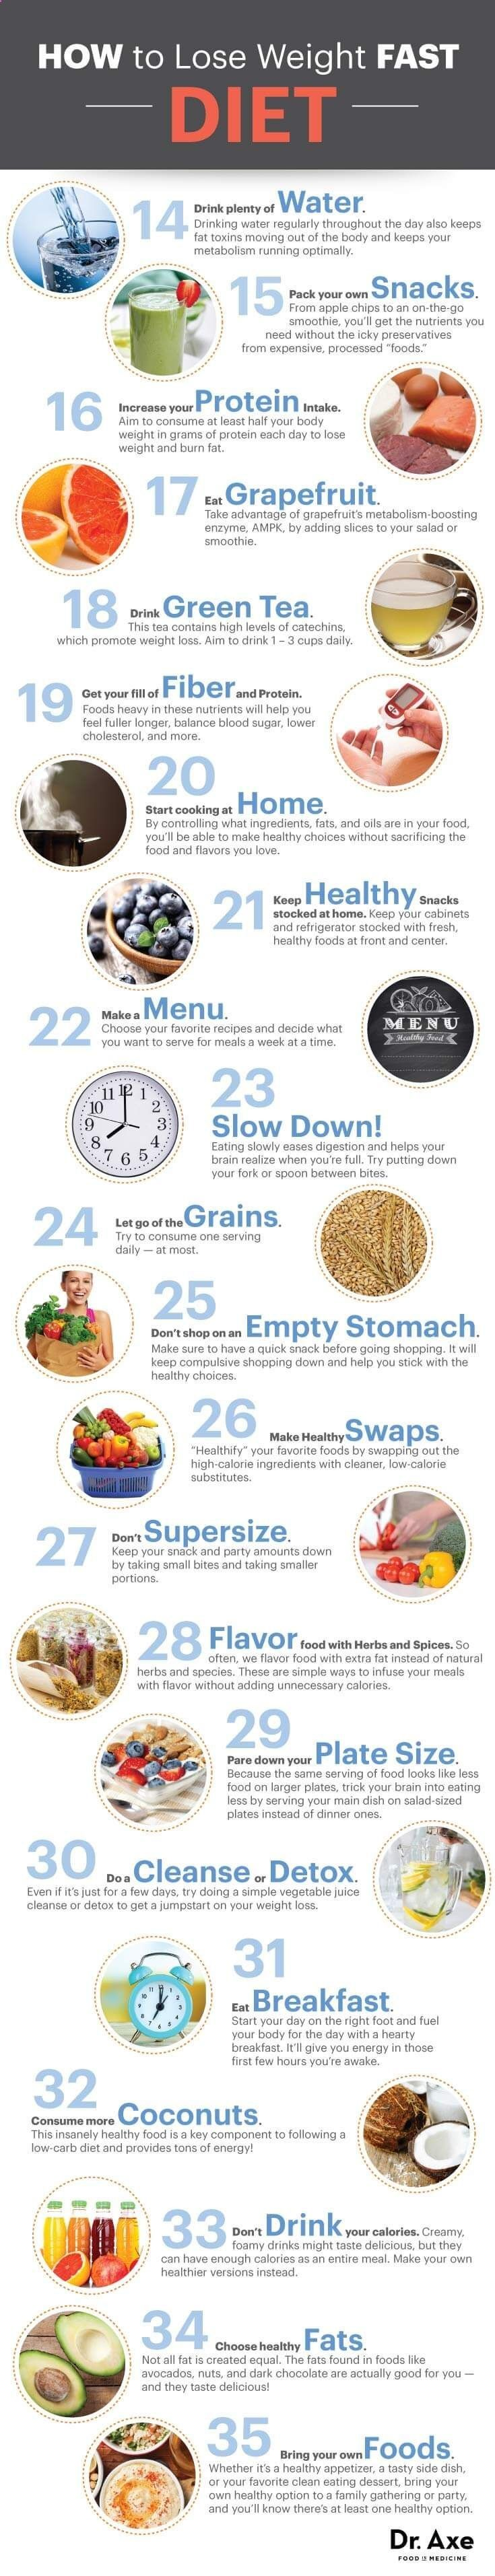 How fast can you lose weight in 2 weeks image 1